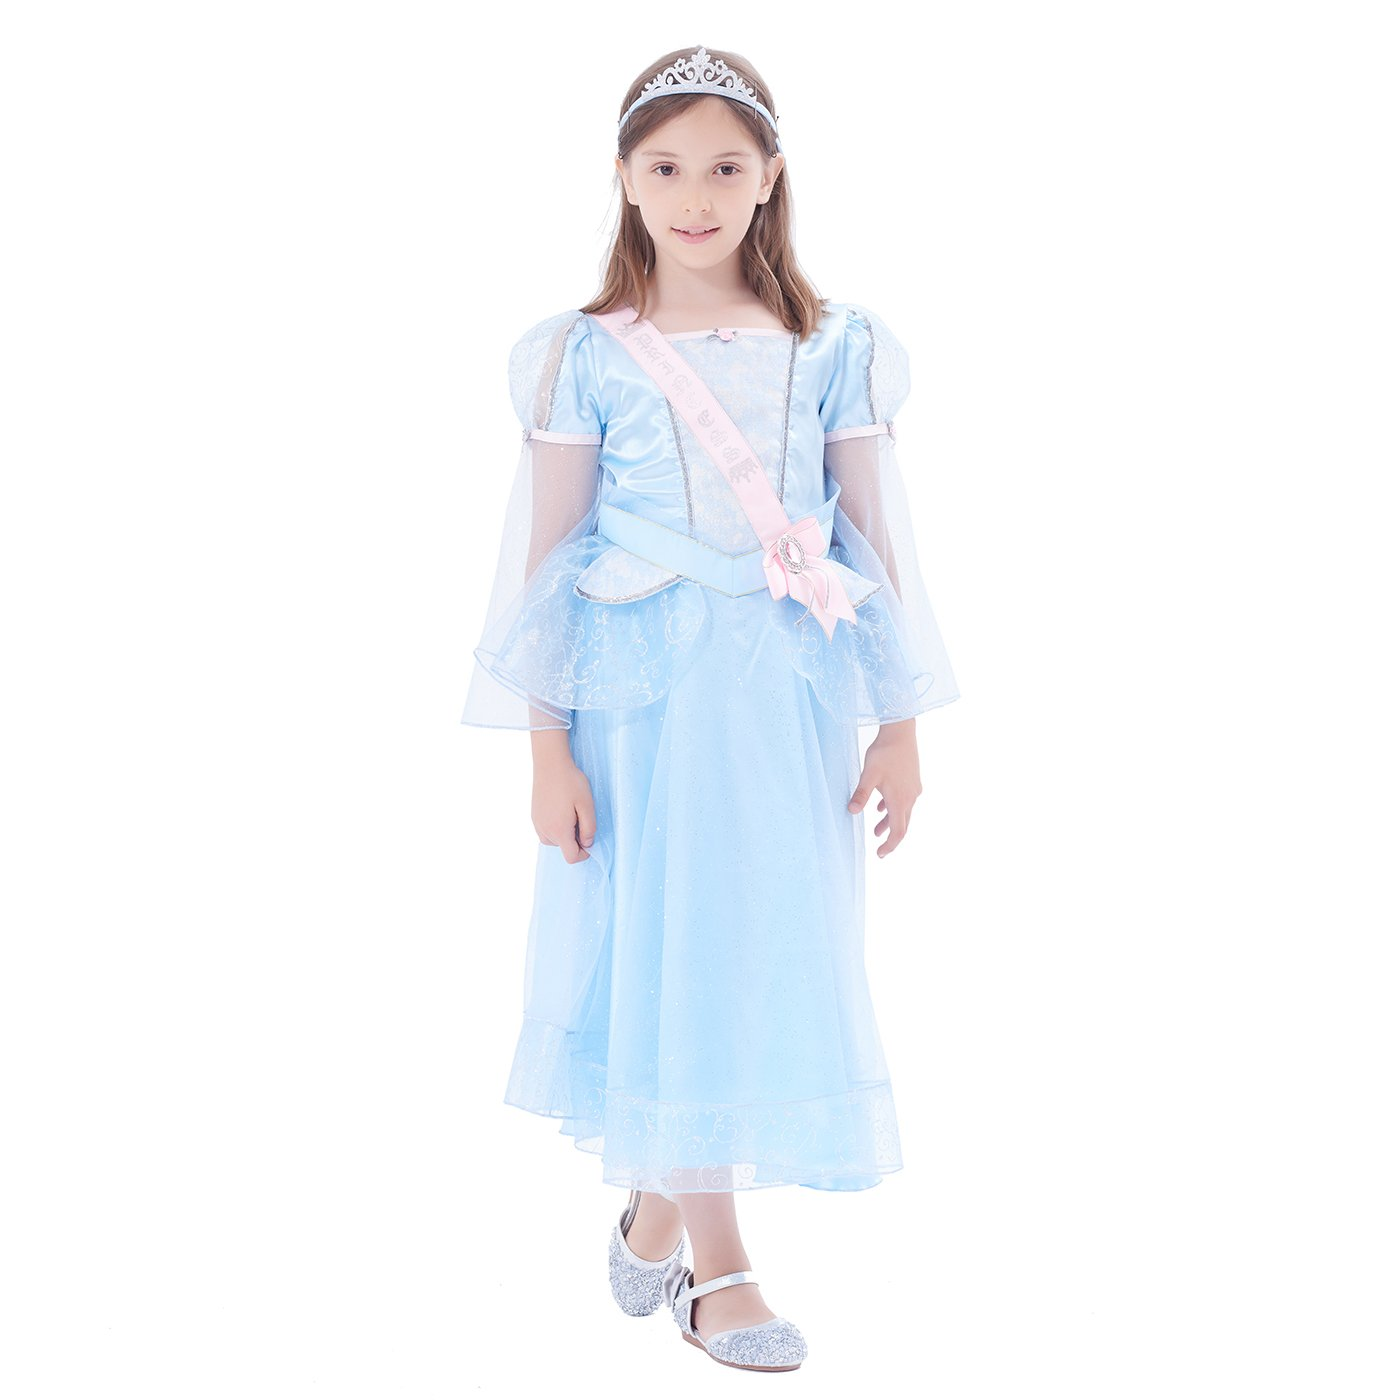 IKALI Girl Party Fancy Dress Up, Lace Ruffle Princess Wedding Costume Set with Tiara